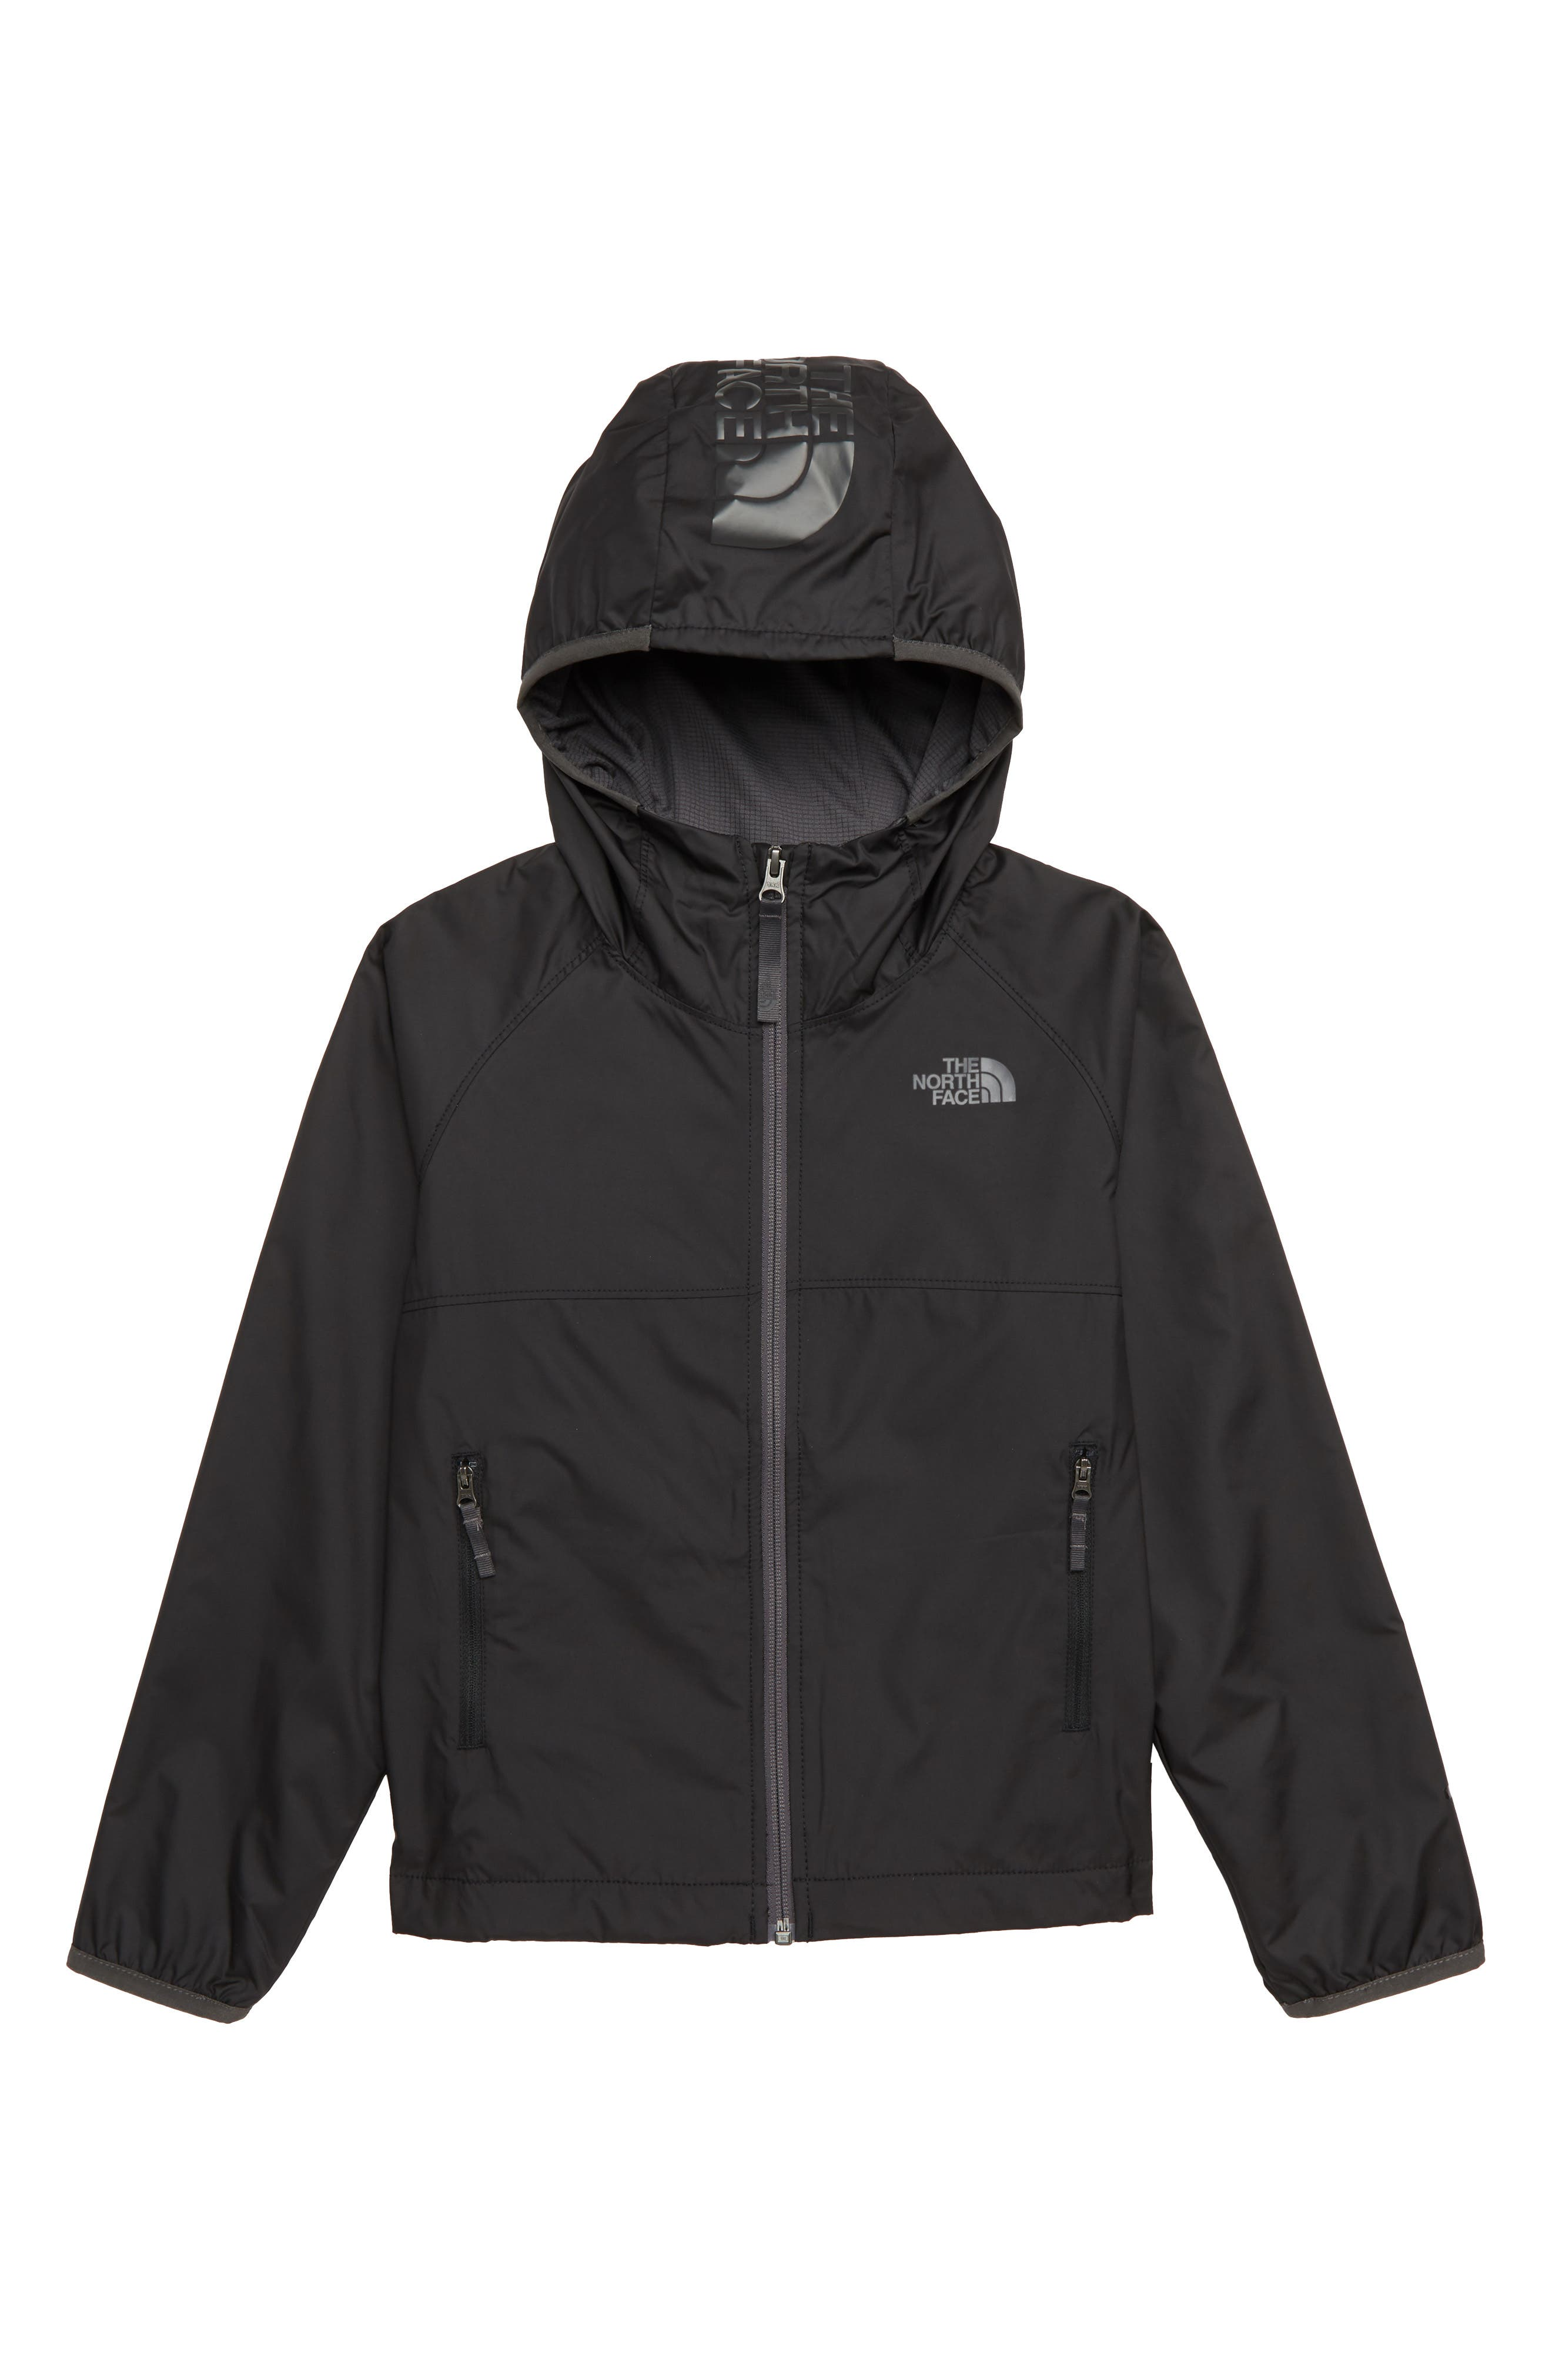 THE NORTH FACE Windy Crest Water Repellent Jacket, Main, color, BLACK